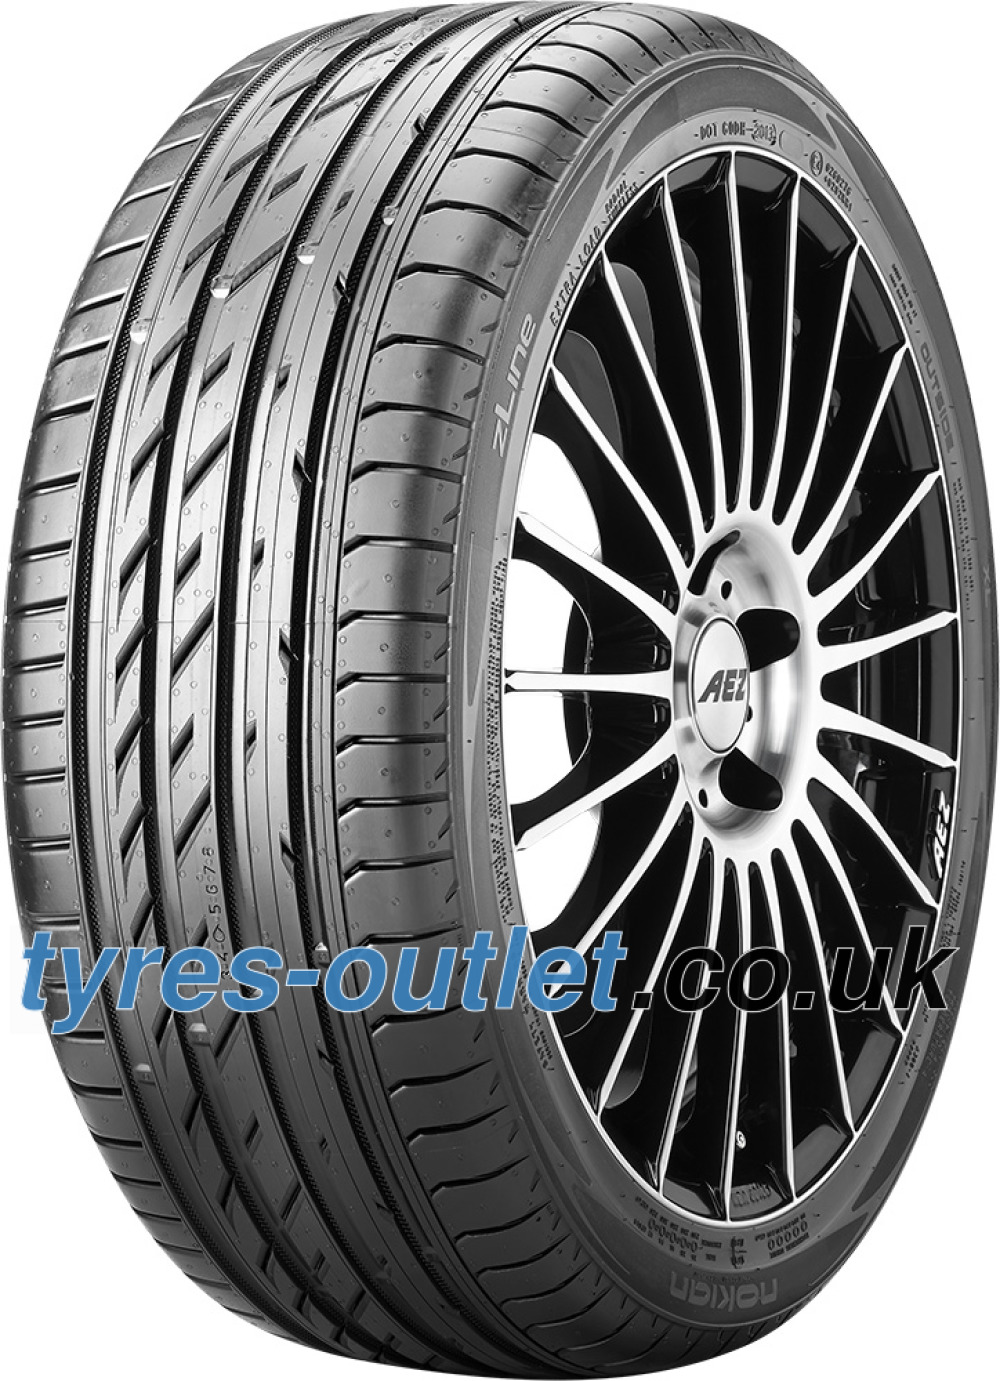 Nokian zLine ( 245/40 ZR17 95Y XL with rim protection (MFS) )